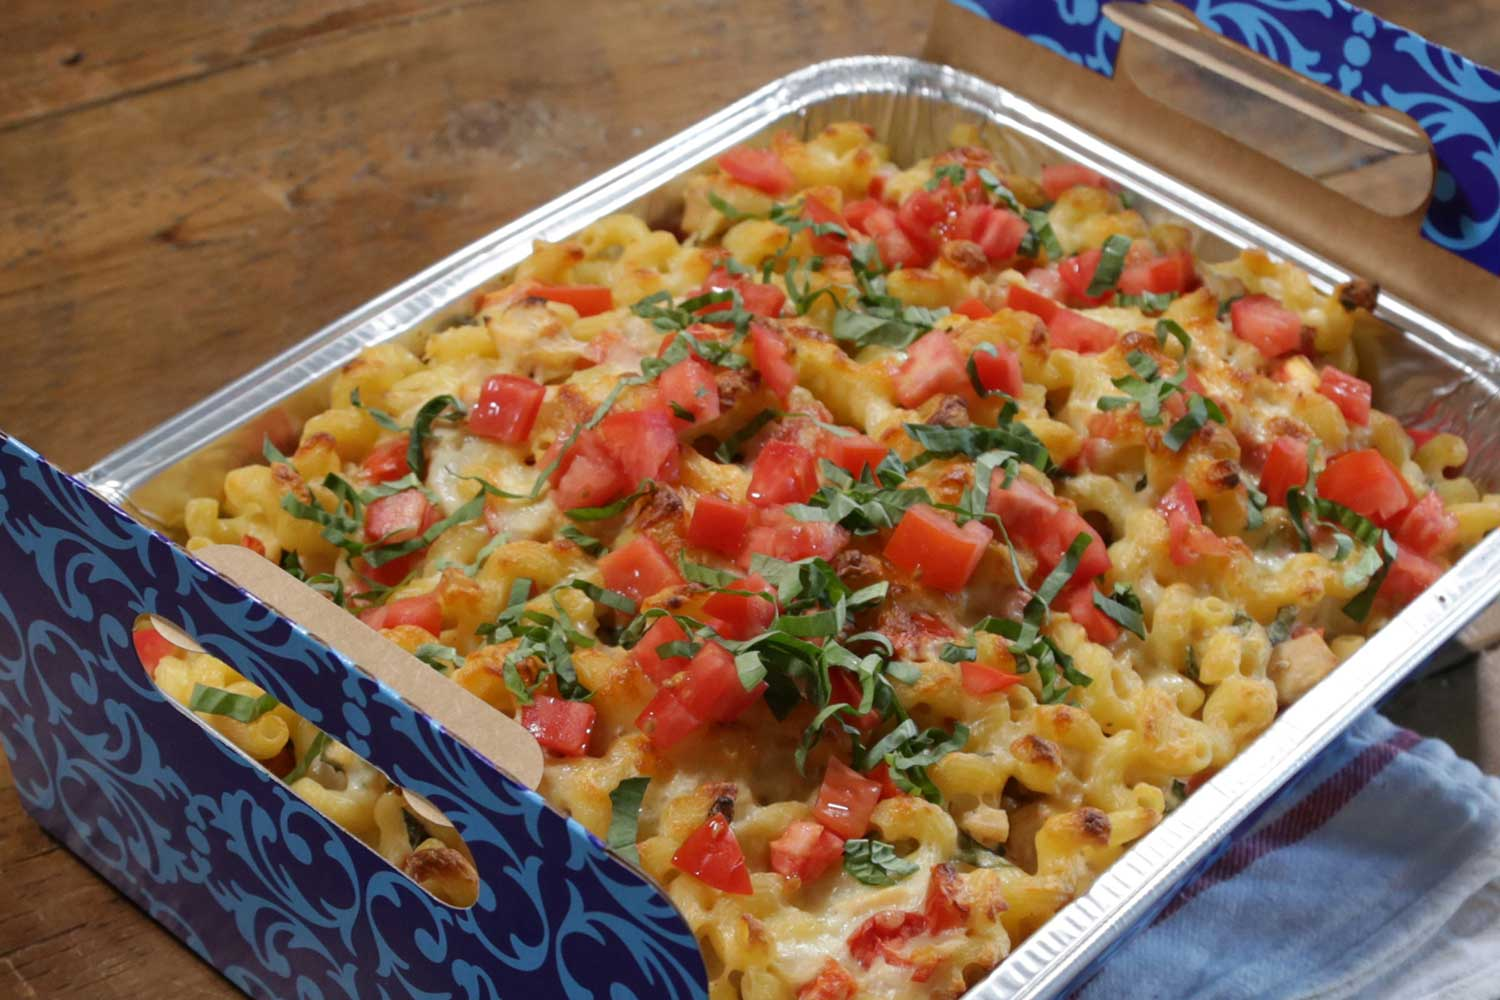 Tomato Basil Macaroni and Cheese